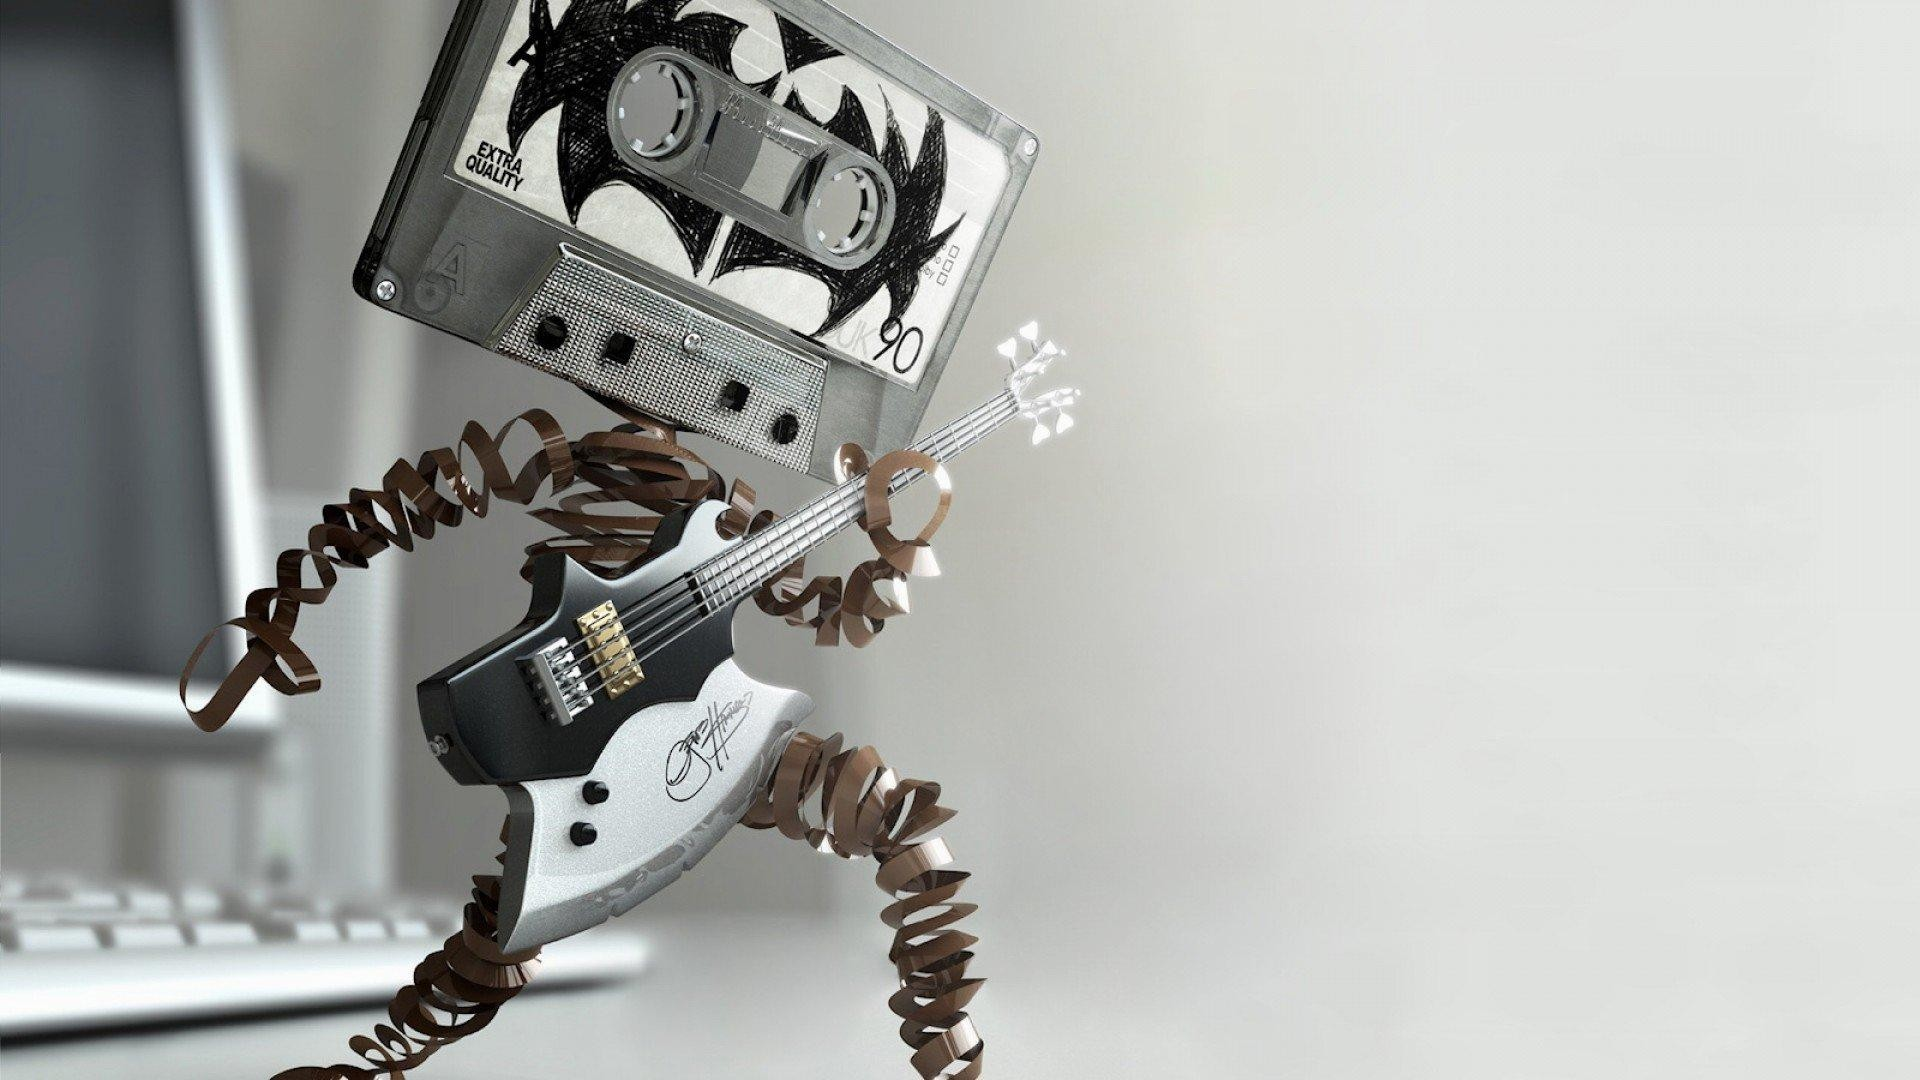 wallpaper.wiki-Funny-Bass-Guitar-Photo-PIC-WPC001503